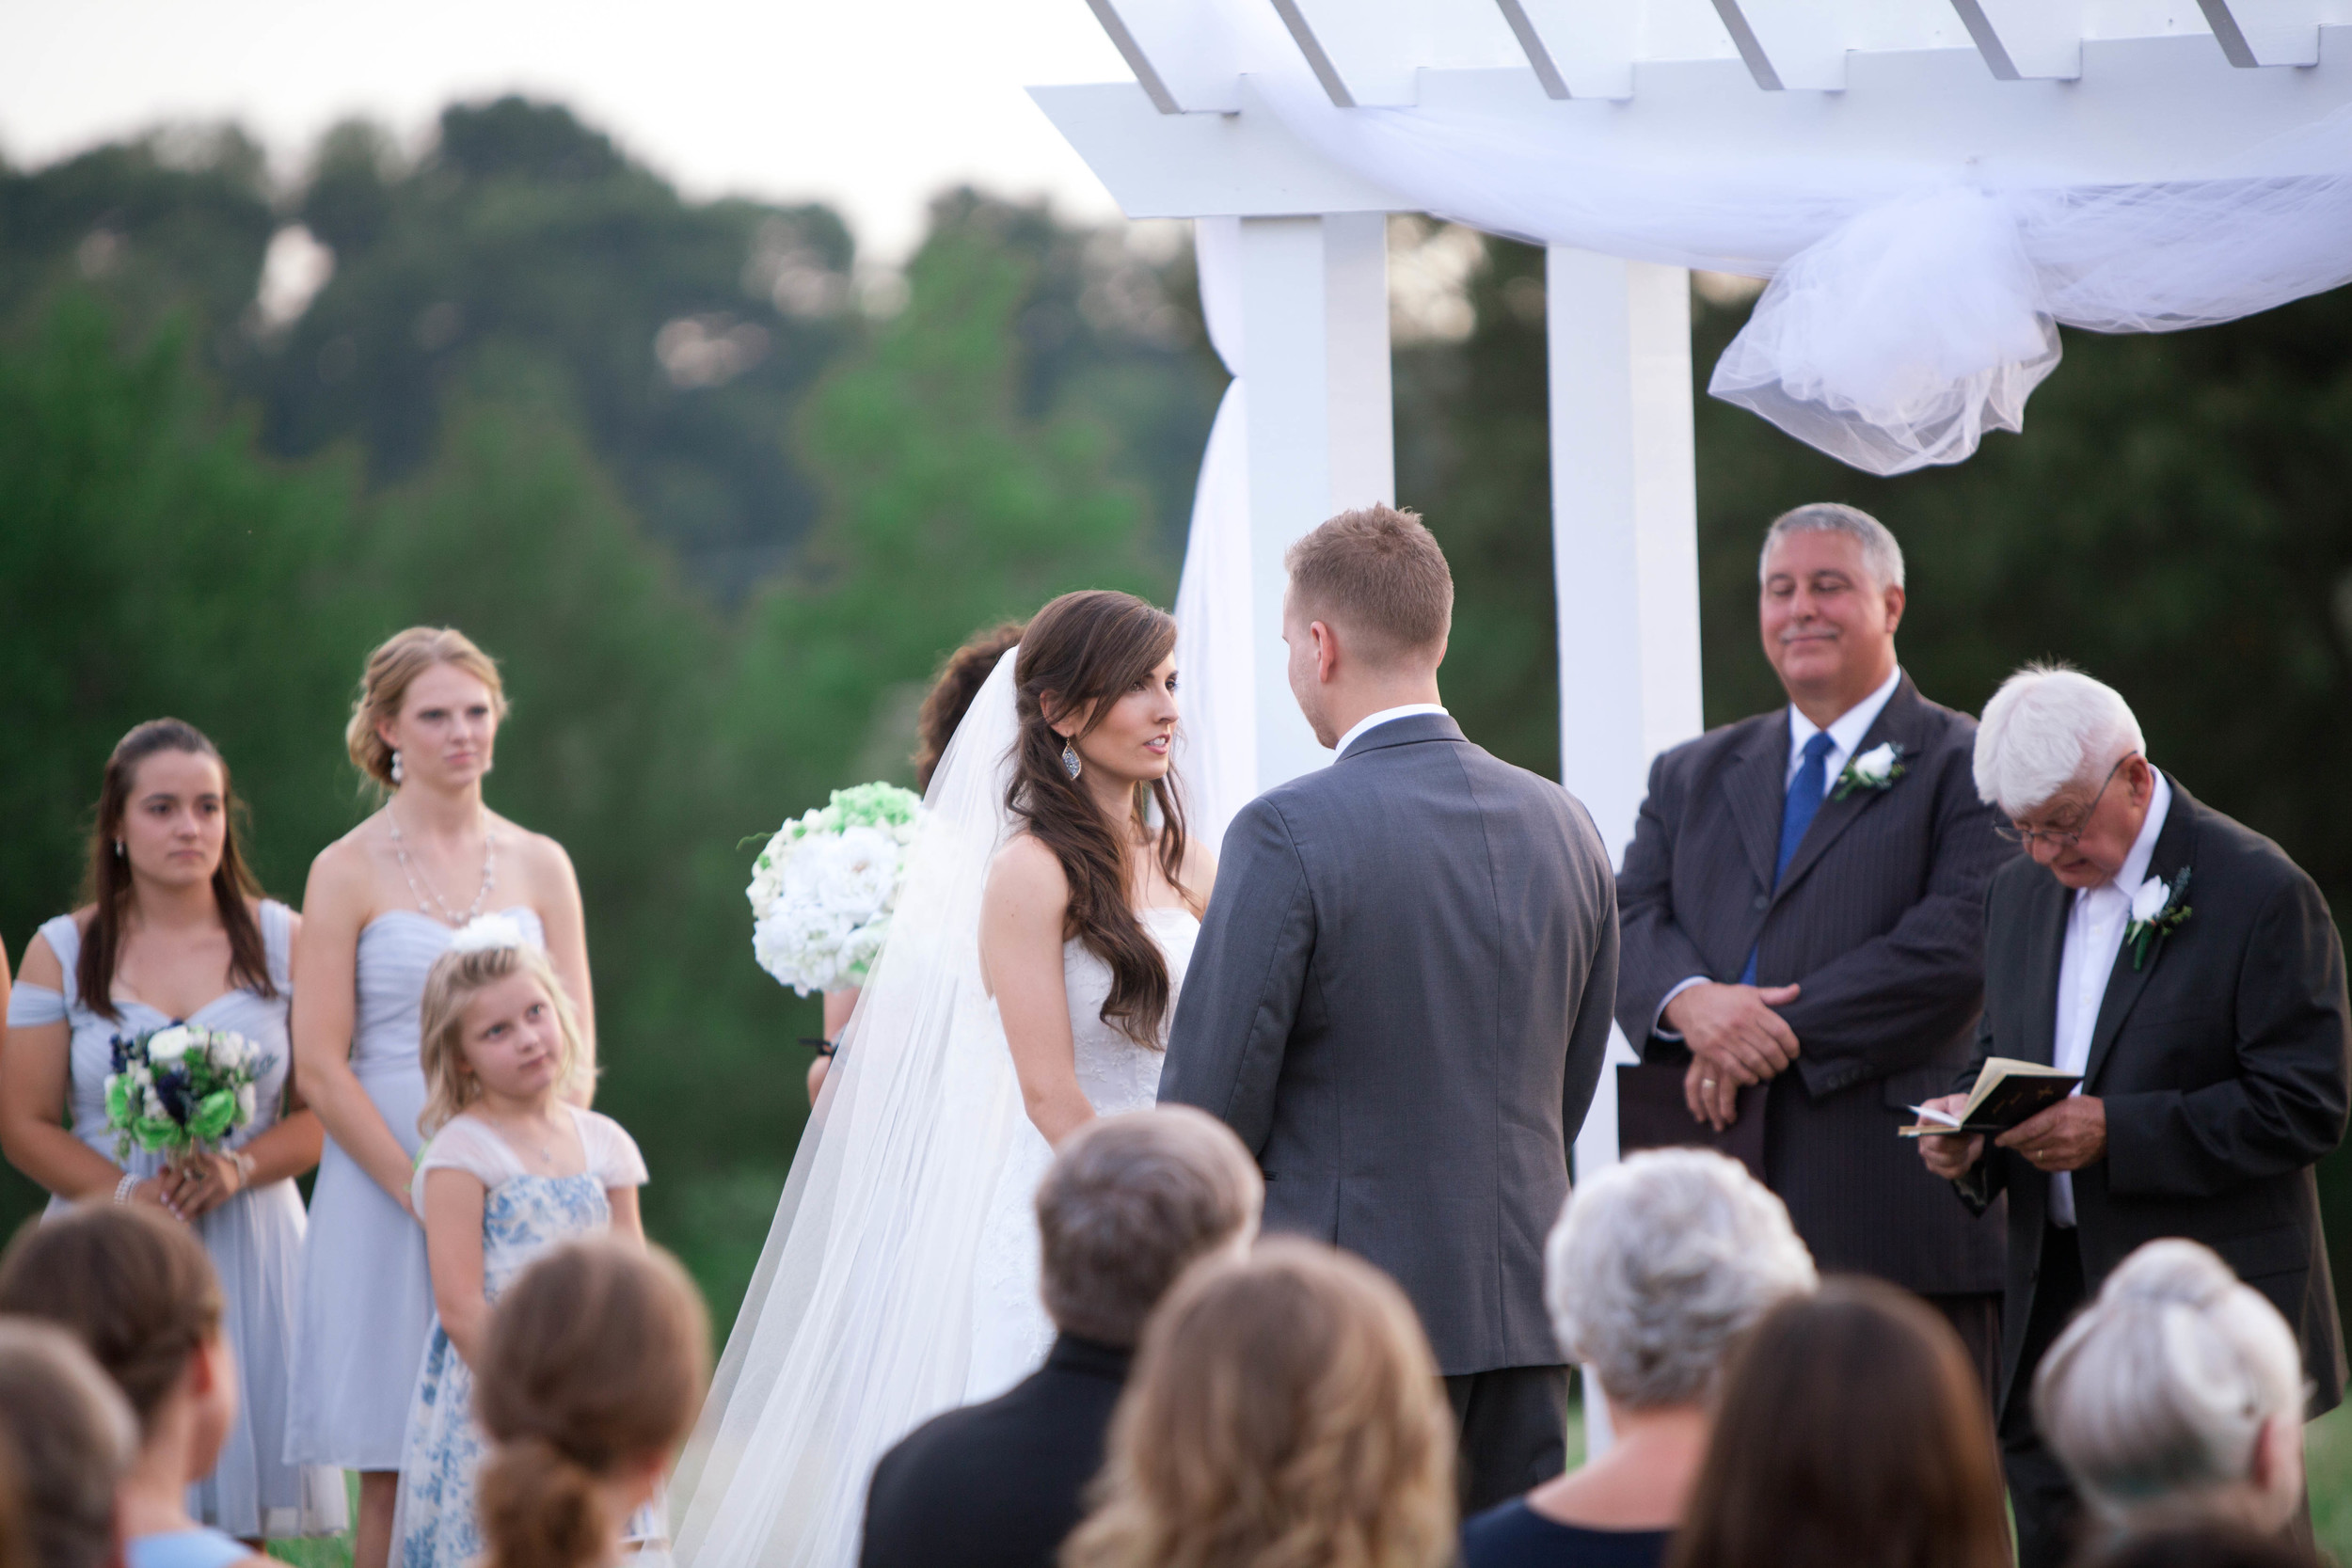 vows, lindsey plantation, unplugged ceremony, sc wedding photographer, rustic, barn, field, poured out photography